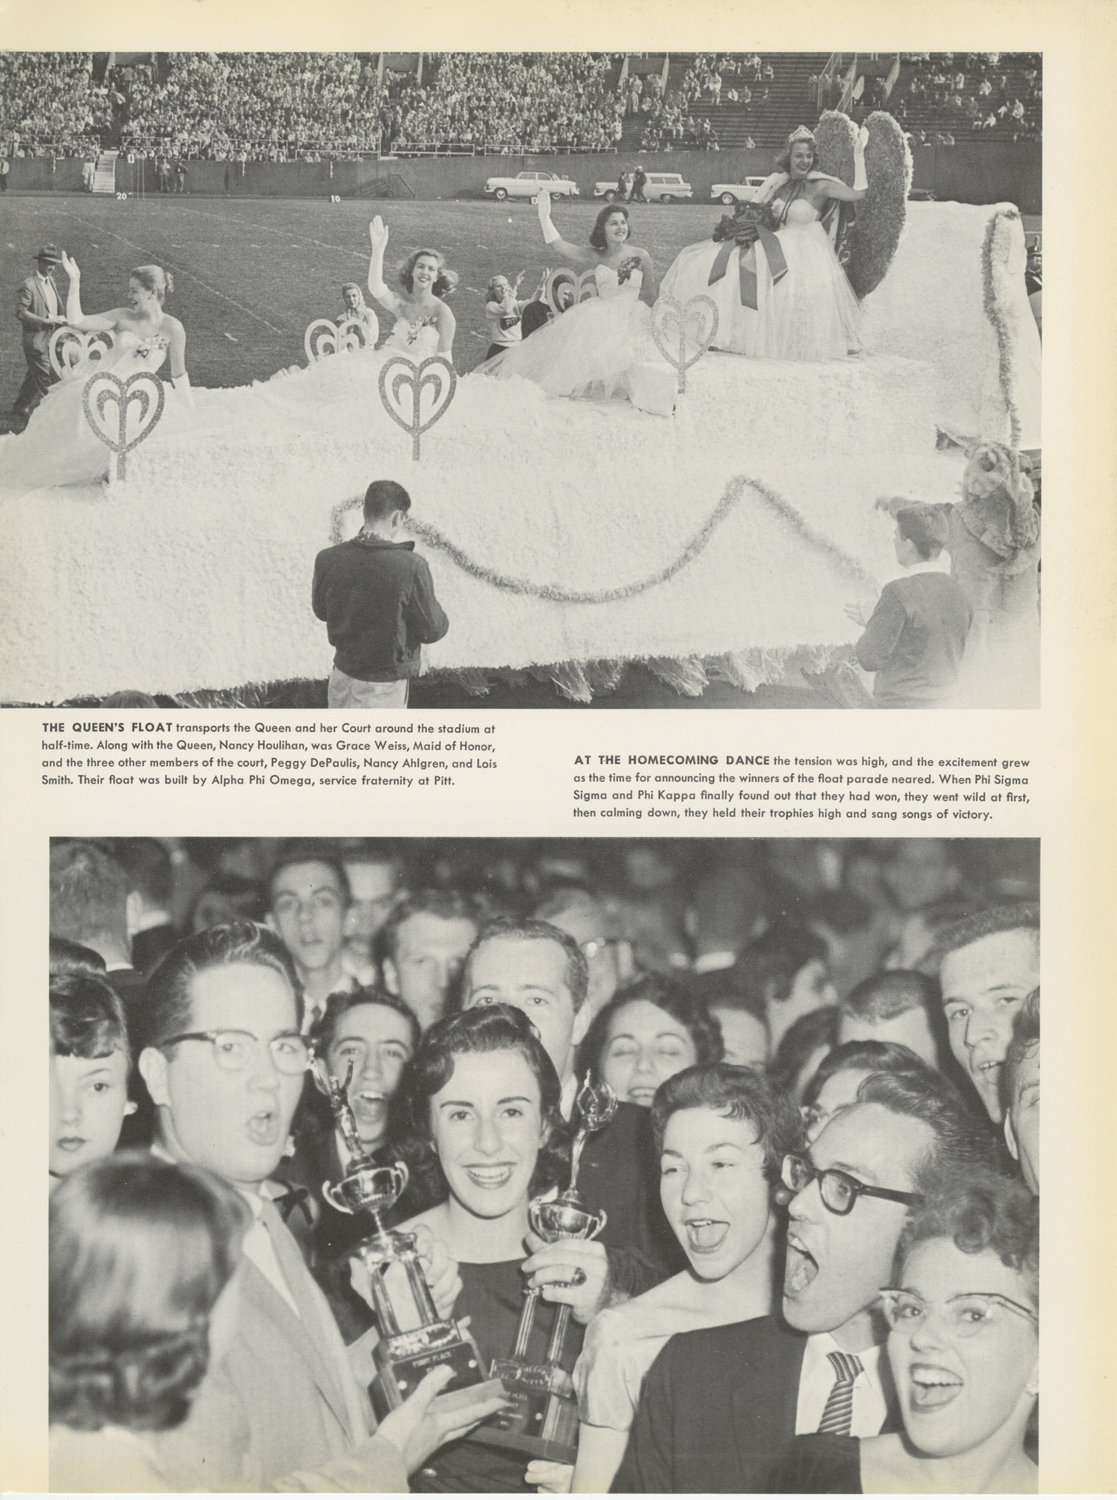 (Top) Pitt's 1957 homecoming queen rides atop a float built by Alpha Phi Omega, a service fraternity at Pitt. (Bottom) Phi Sigma Sigma and Phi Kappa find out they've won the float parade contest.